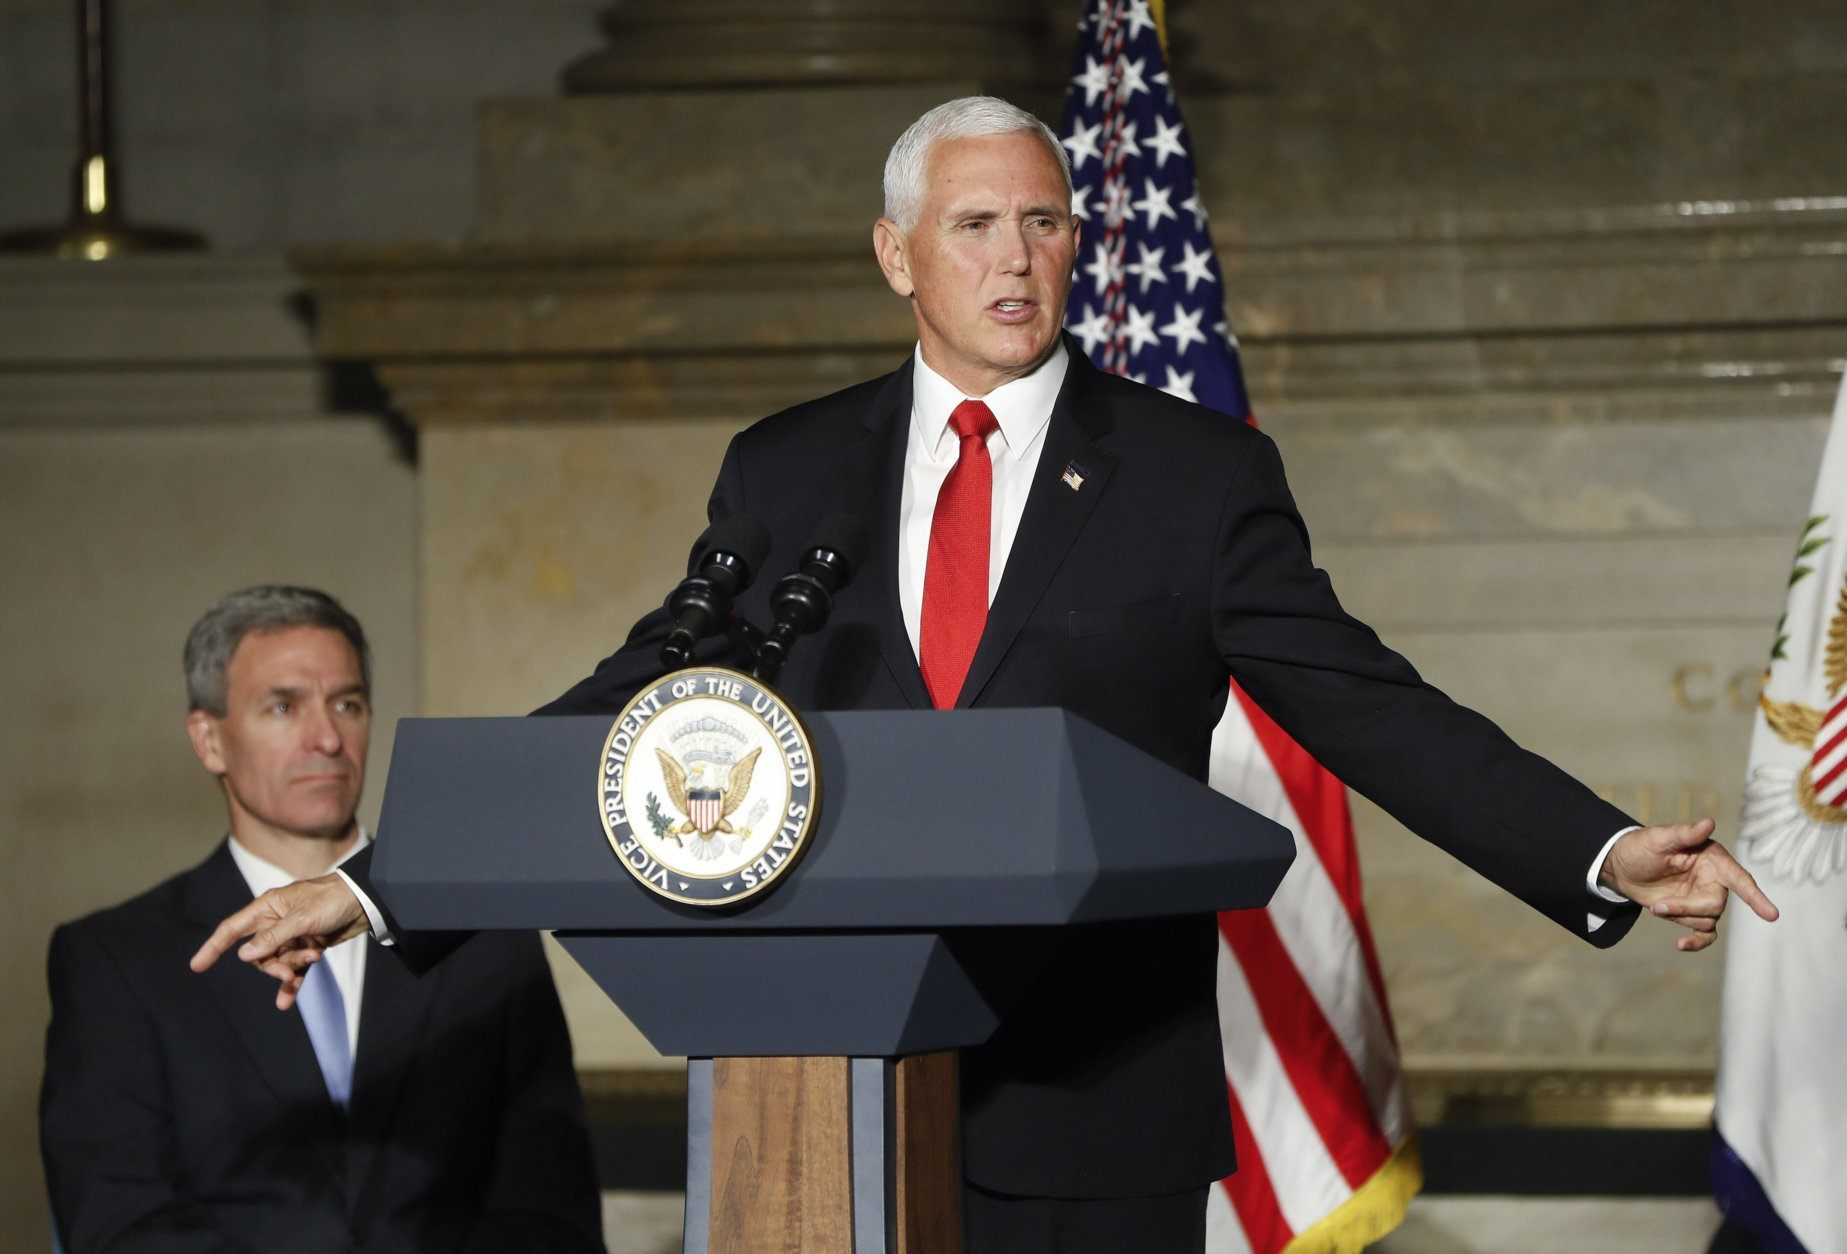 Vice President Mike Pence speaks at a naturalization ceremony for new naturalized citizens in celebration of Independence Day at the National Archives in Washington, Thursday, July 4, 2019. Also at the event is Acting Director, US Immigration and Immigration Services, Kenneth T. Cuccinelli, left seated. (AP Photo/Pablo Martinez Monsivais)